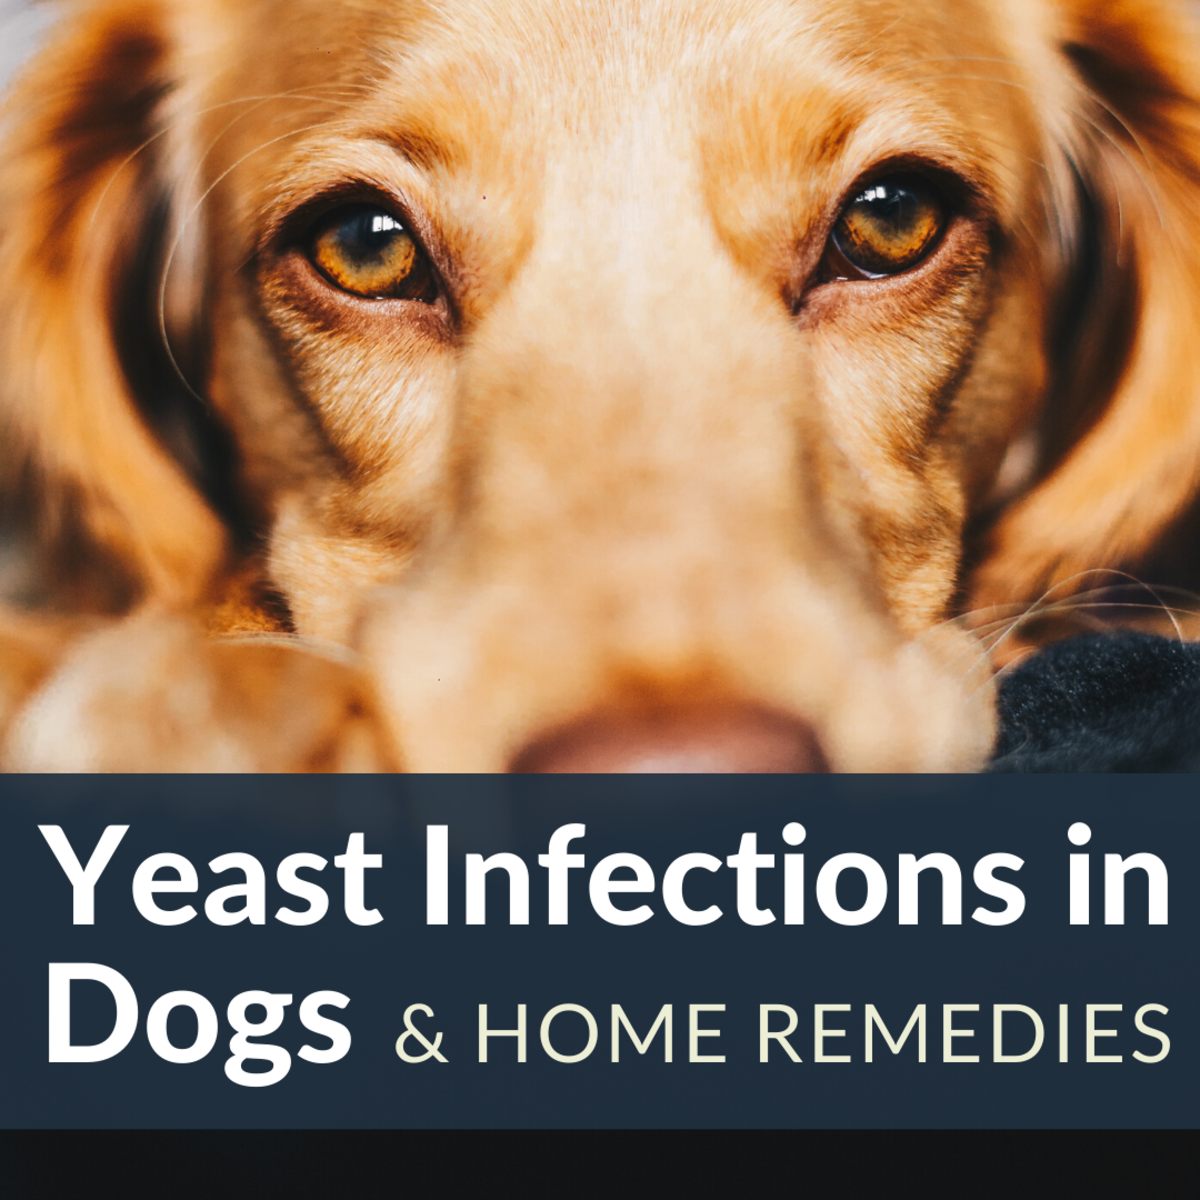 How to Stop Hair Loss and Itching in Dogs From Yeast Overgrowth